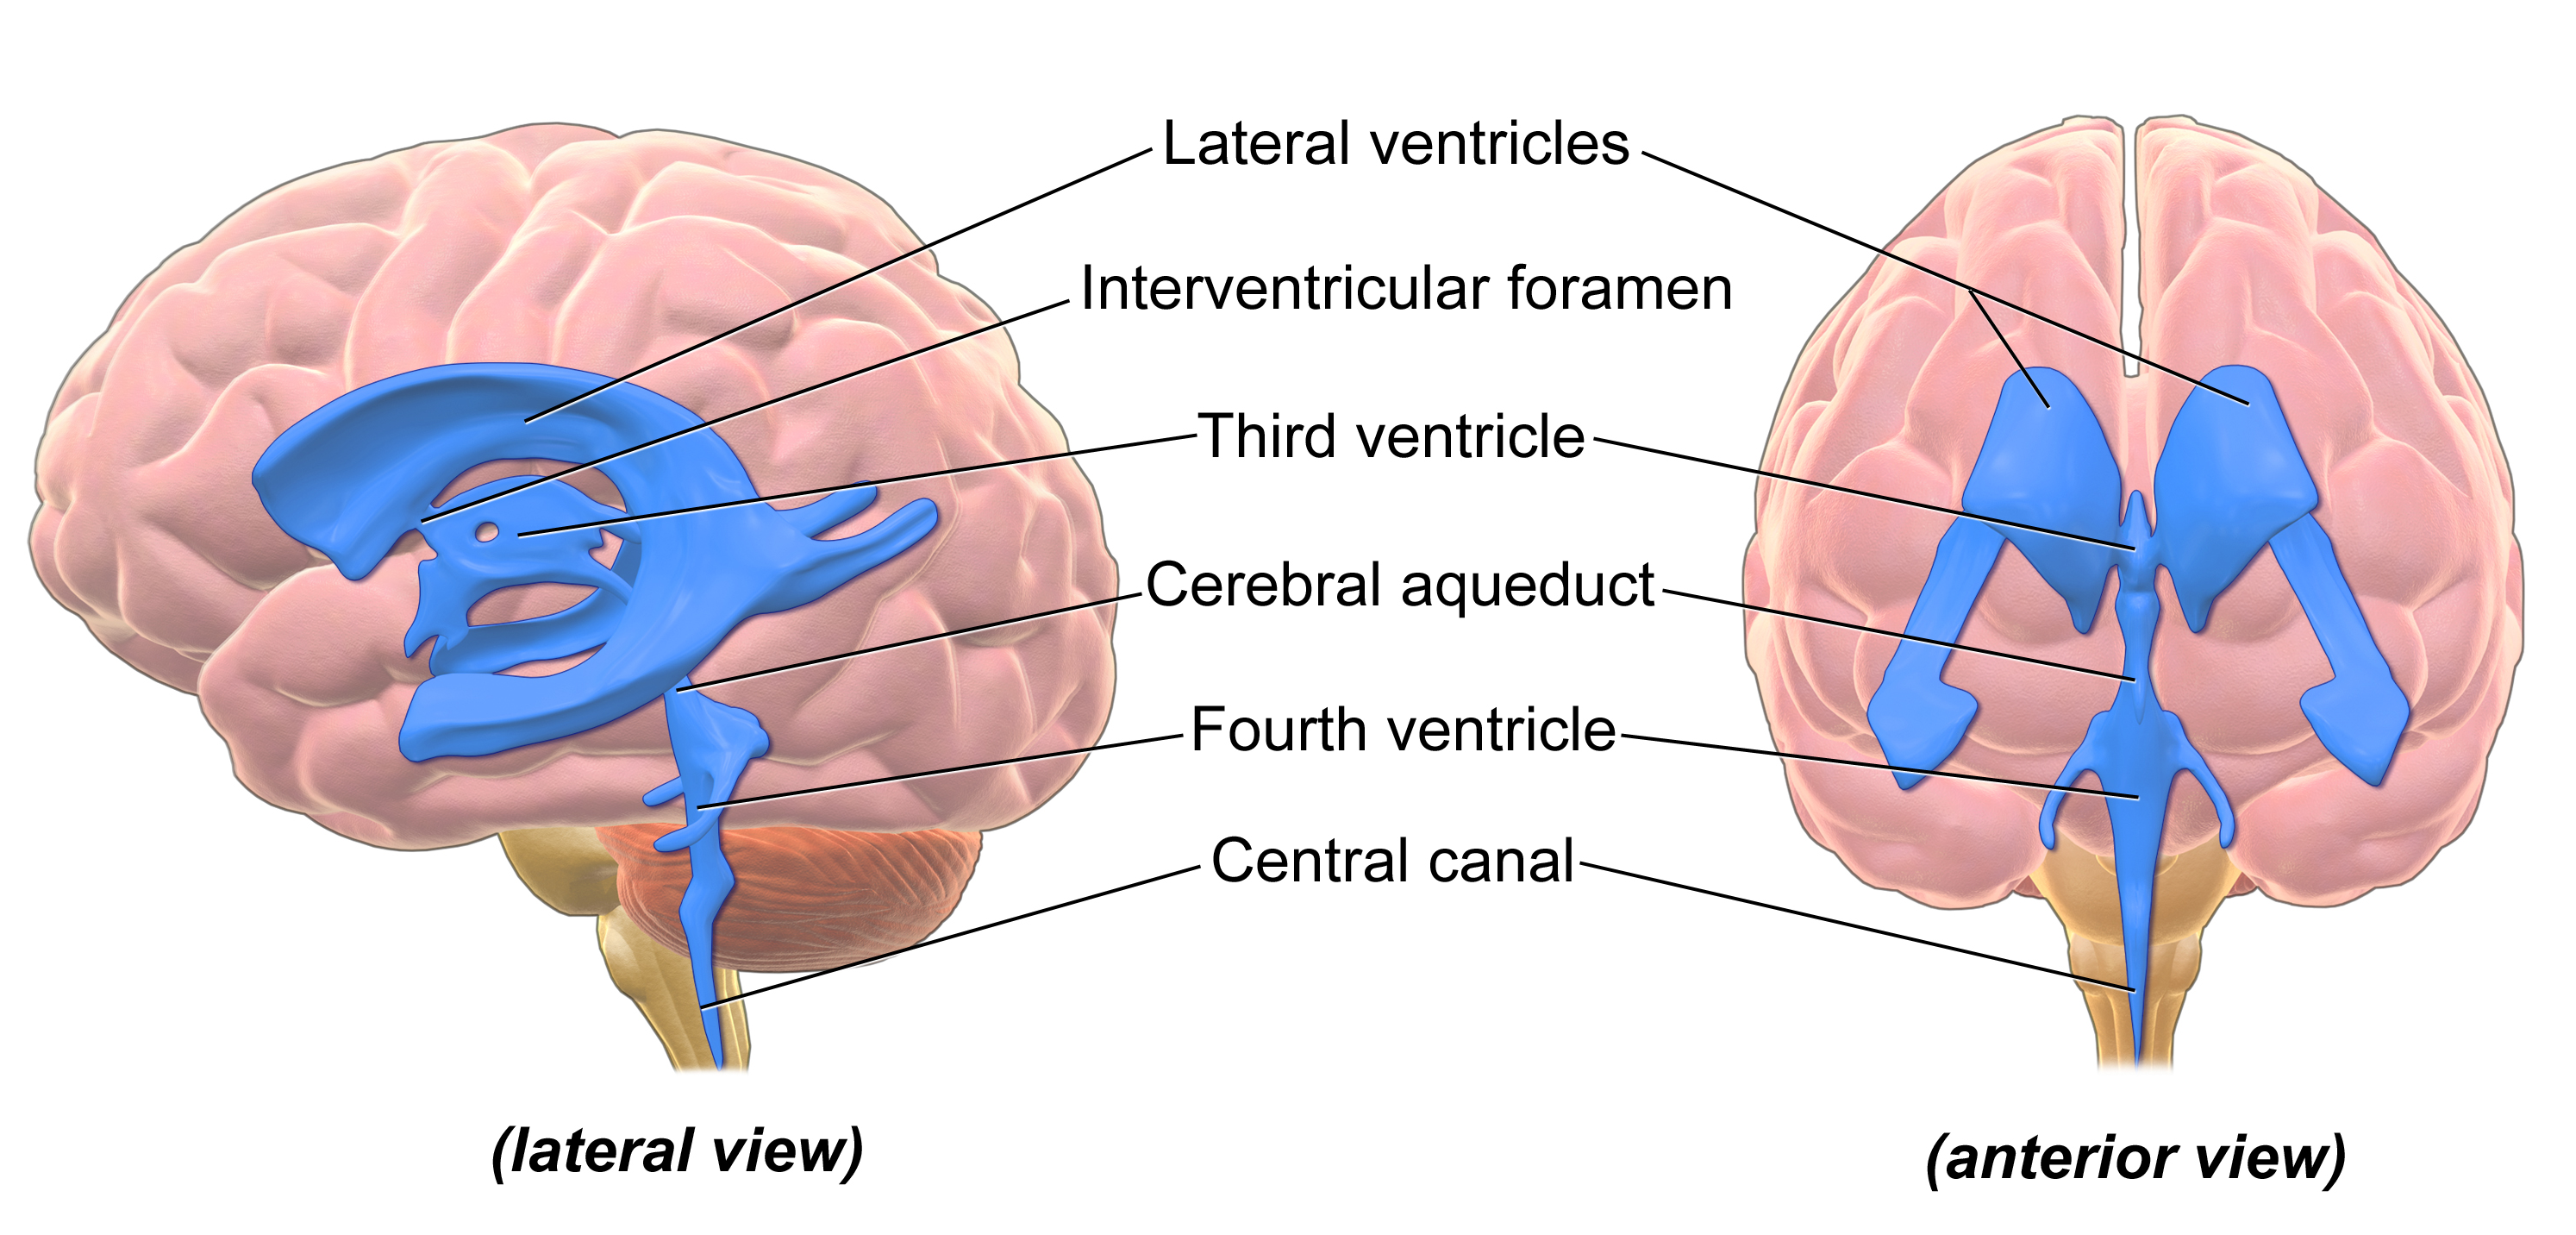 https://upload.wikimedia.org/wikipedia/commons/d/d4/Blausen_0896_Ventricles_Brain.png